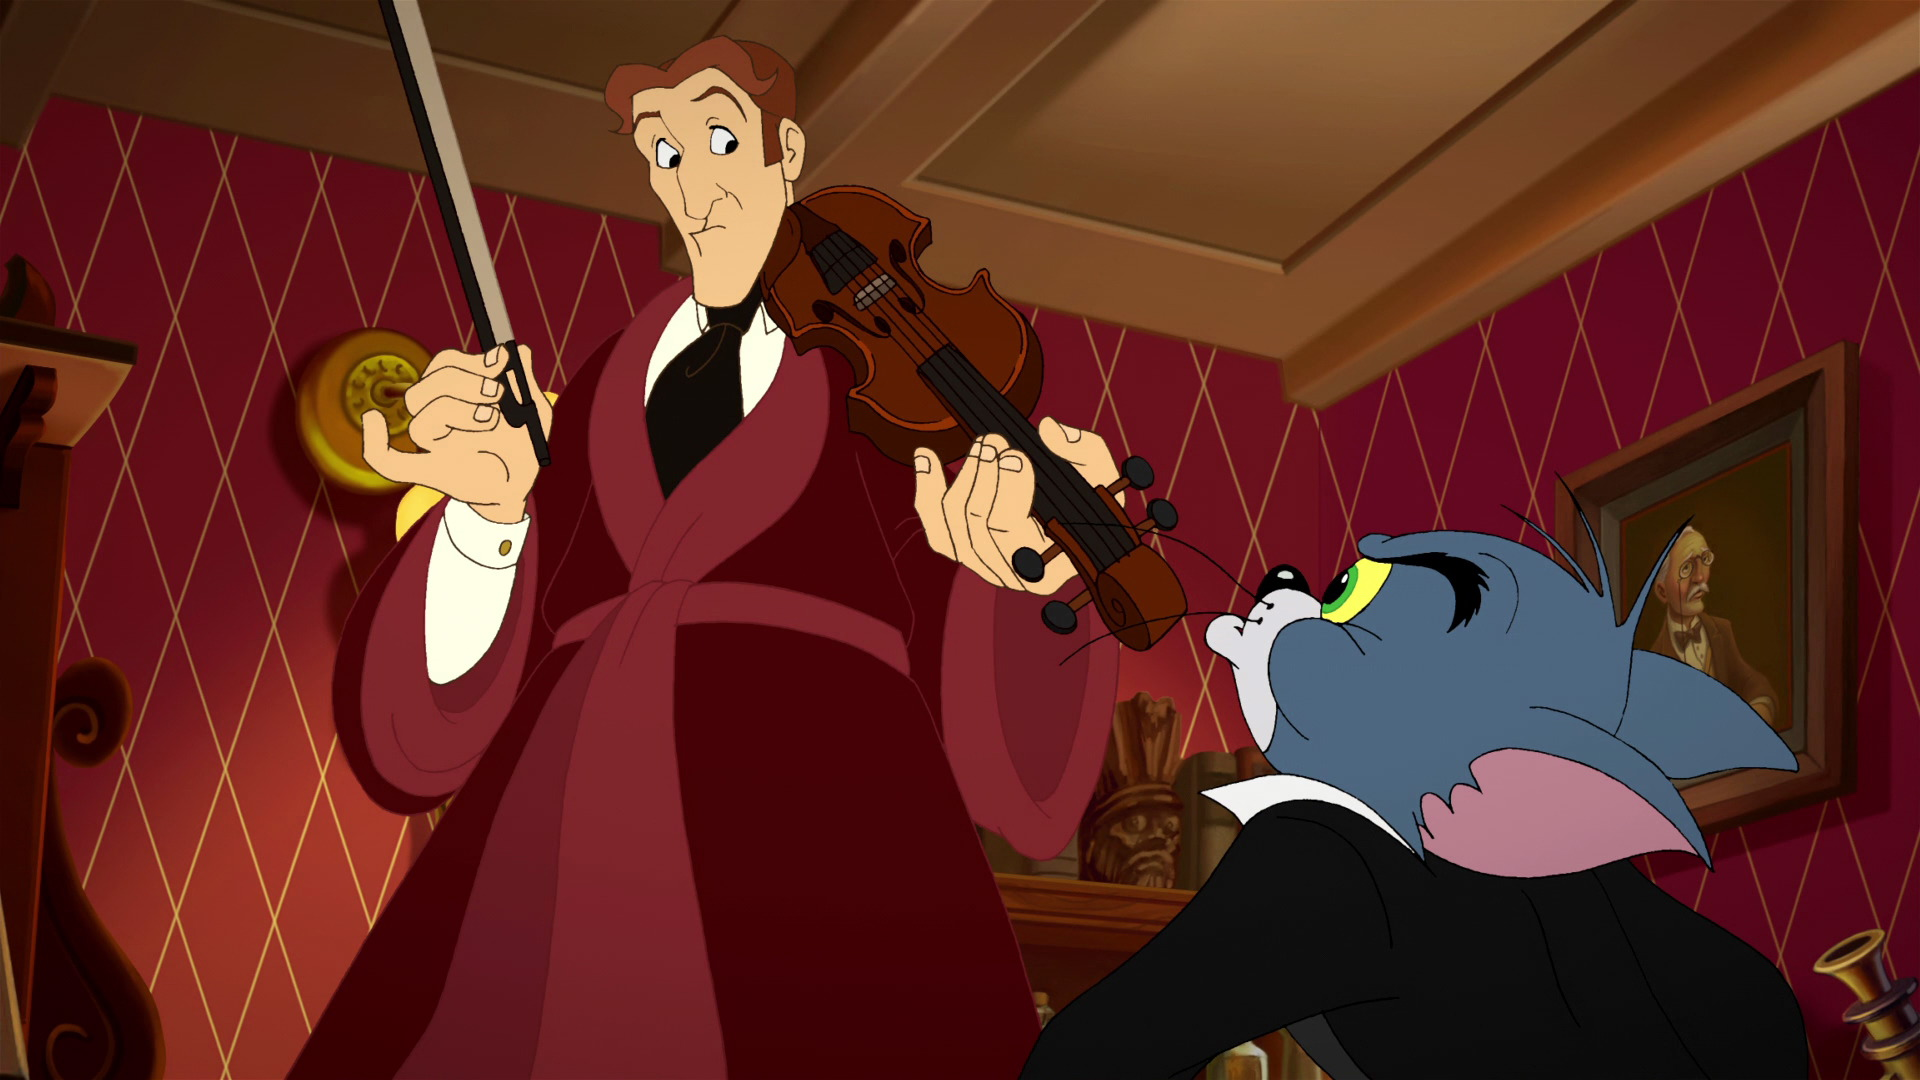 tom and jerry meet sherlock holmes online games There are a number of cartoon games online featuring favourites tom and jerry and they are all of a high quality and this game where tom and jerry meet the famous detective sherlock holmes is no different transported back to victorian london, tom and jerry put their differences aside to team with sherlock holmes to.